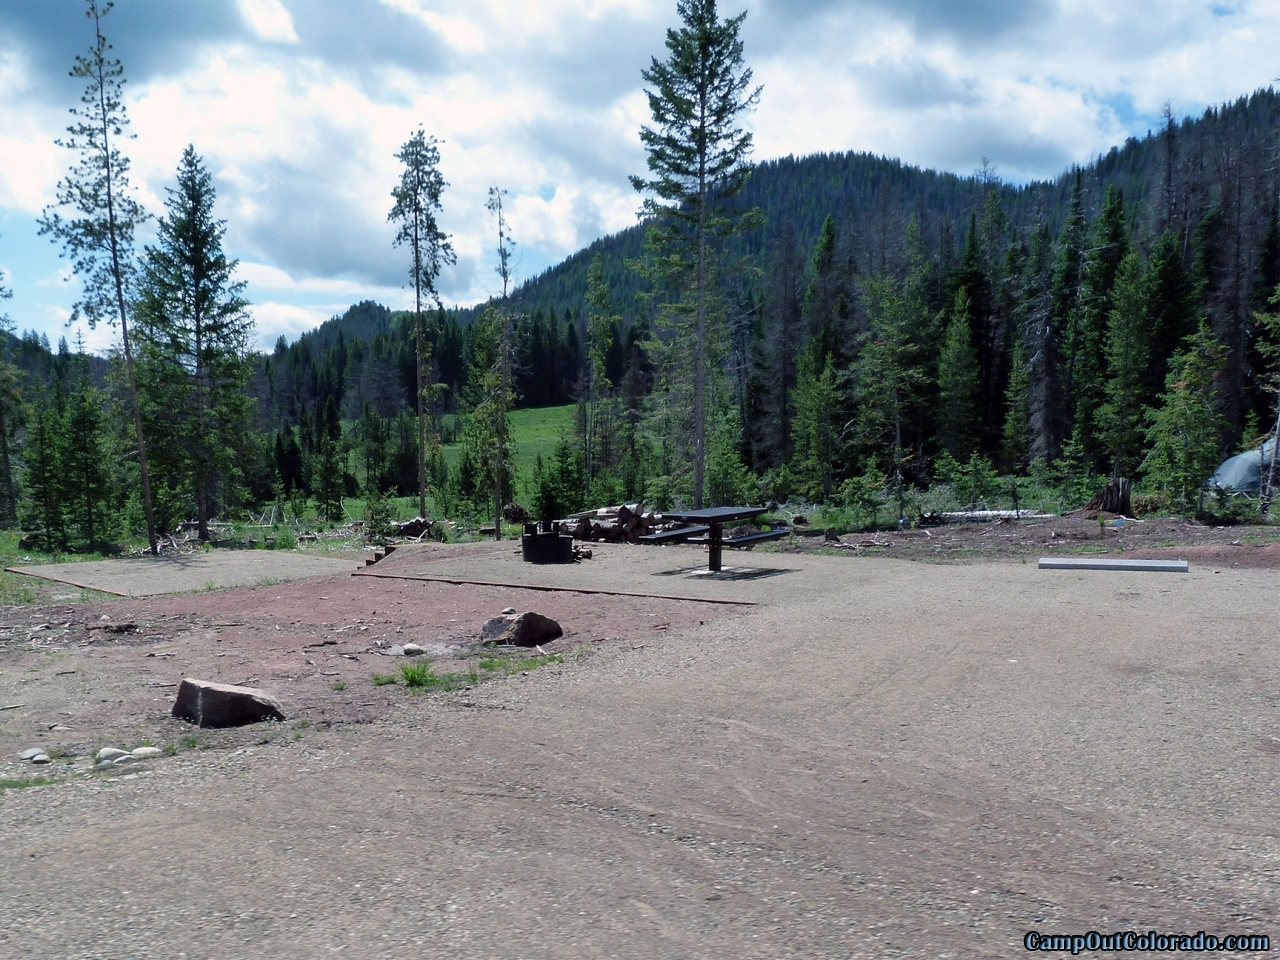 Camping Review of Hahns Peak Lake Campground